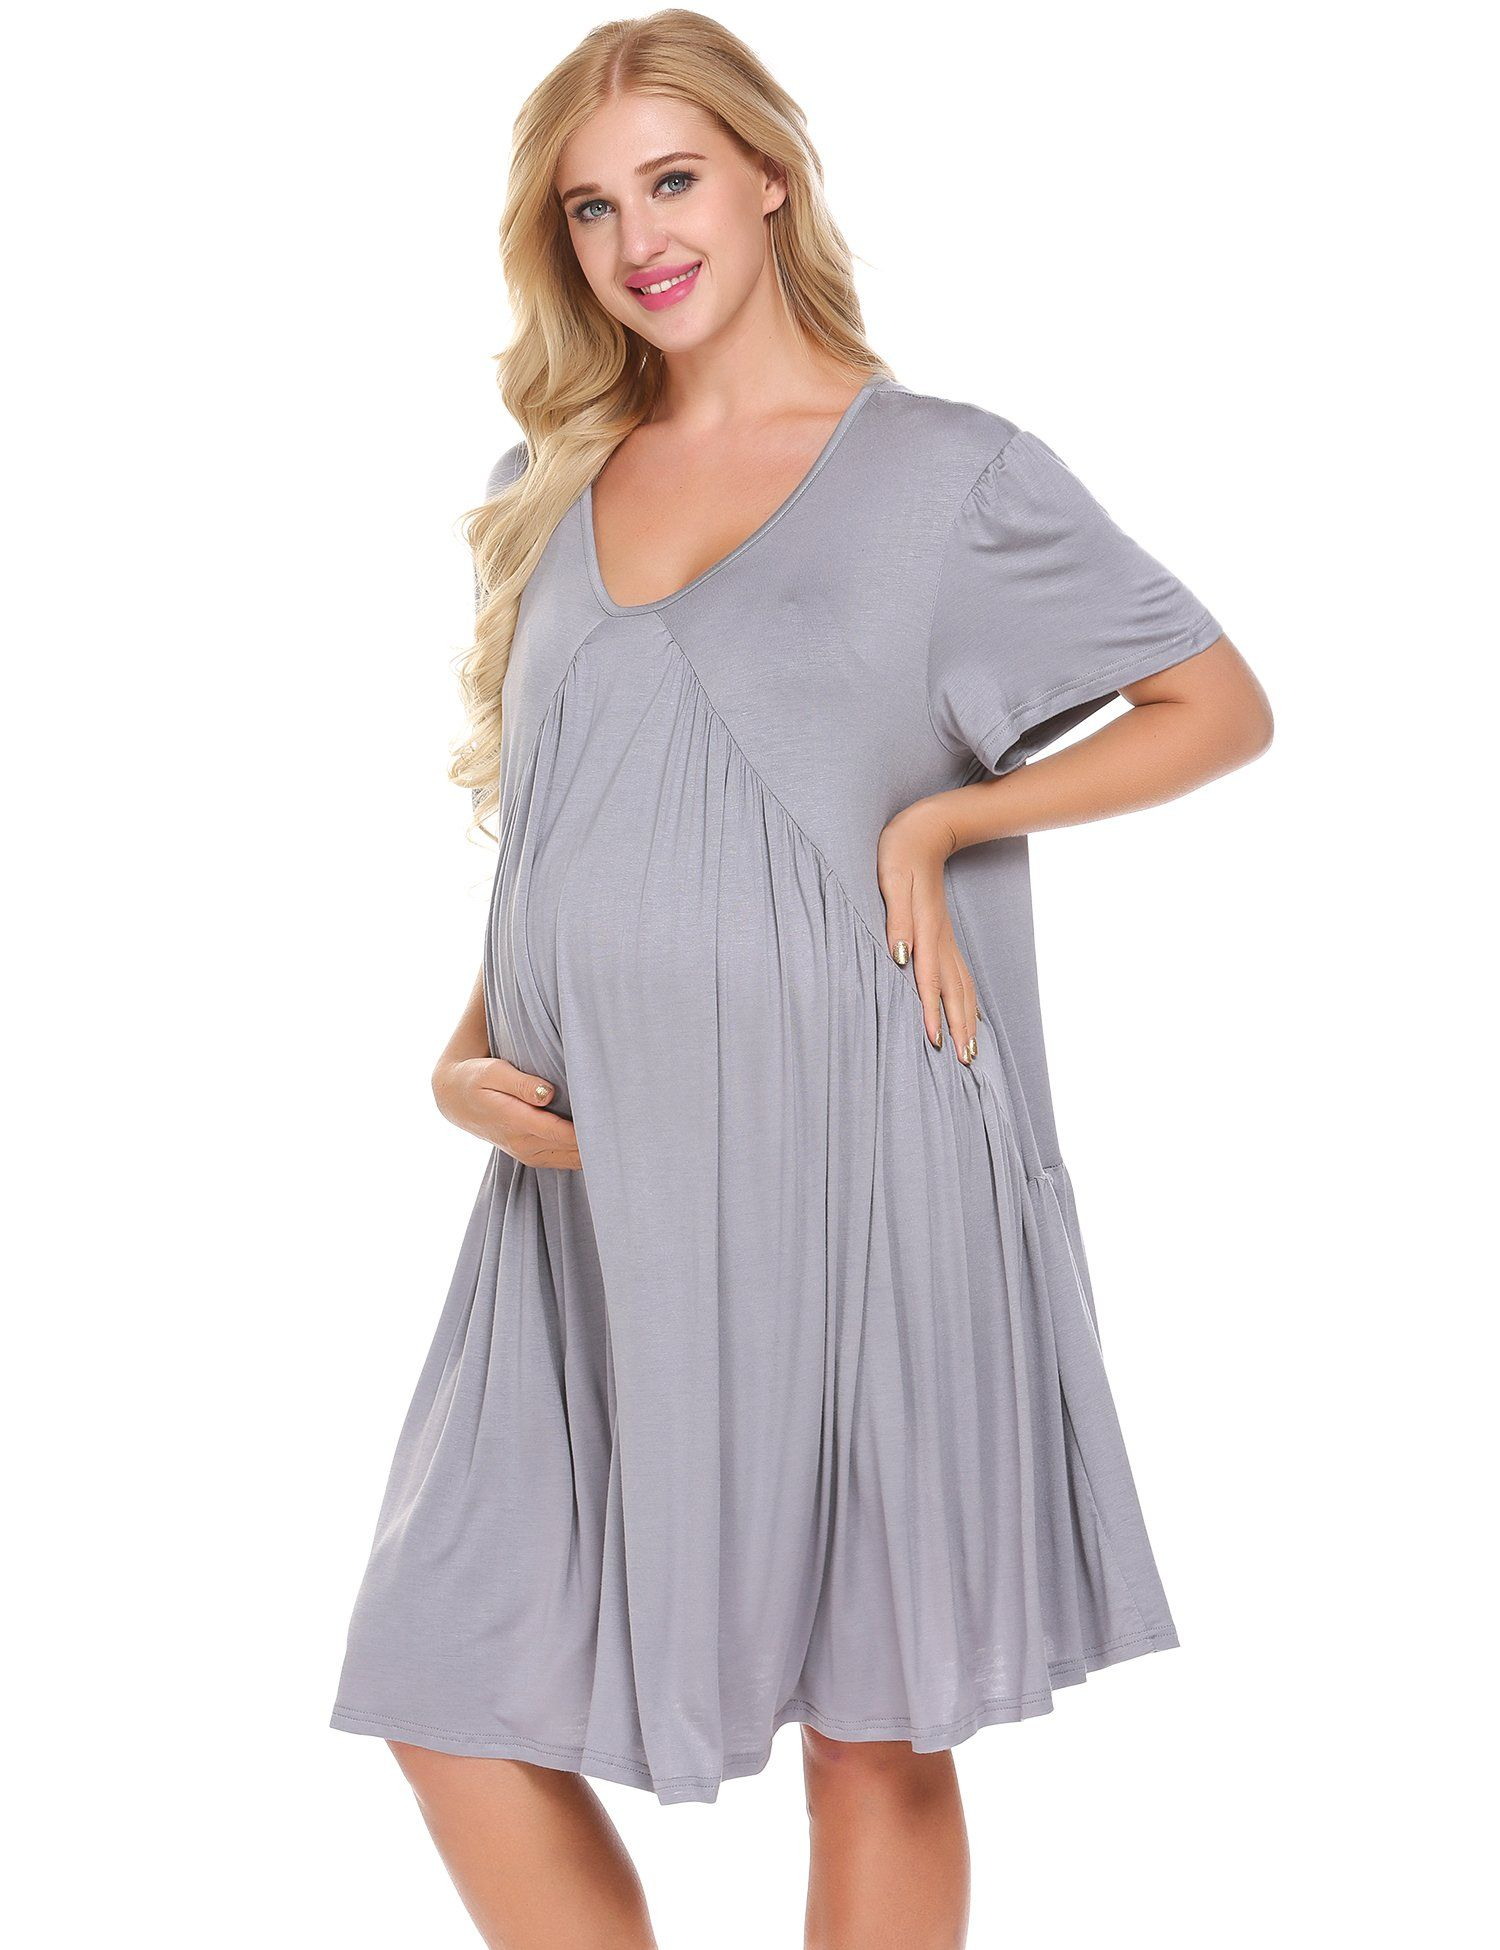 75f865ad0ef5 Maternity Fashion - modest maternity dresses   Lamore Womens VNeck  KneeLength 3 4 Sleeve Casual Party Elegant Maternity Dresses Pregnancy  Clothes    Read ...